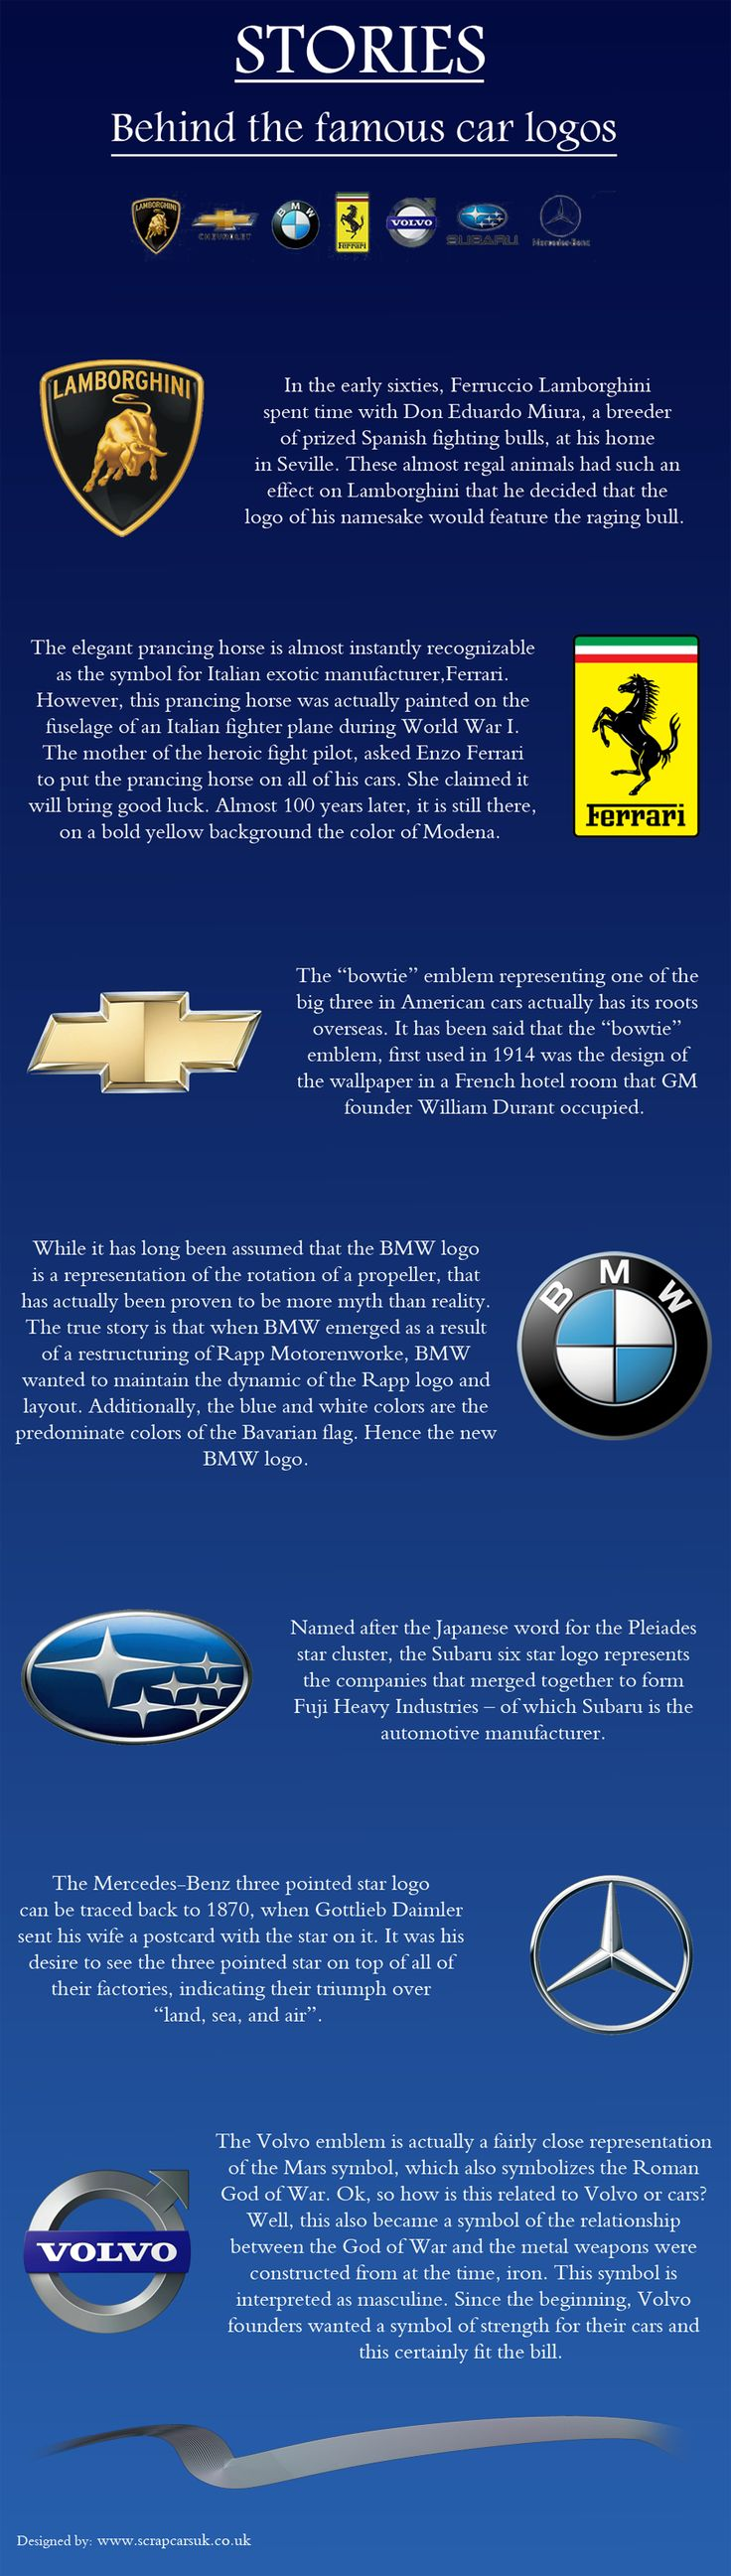 7 Most Famous Car Logos and the Stories Behind Them